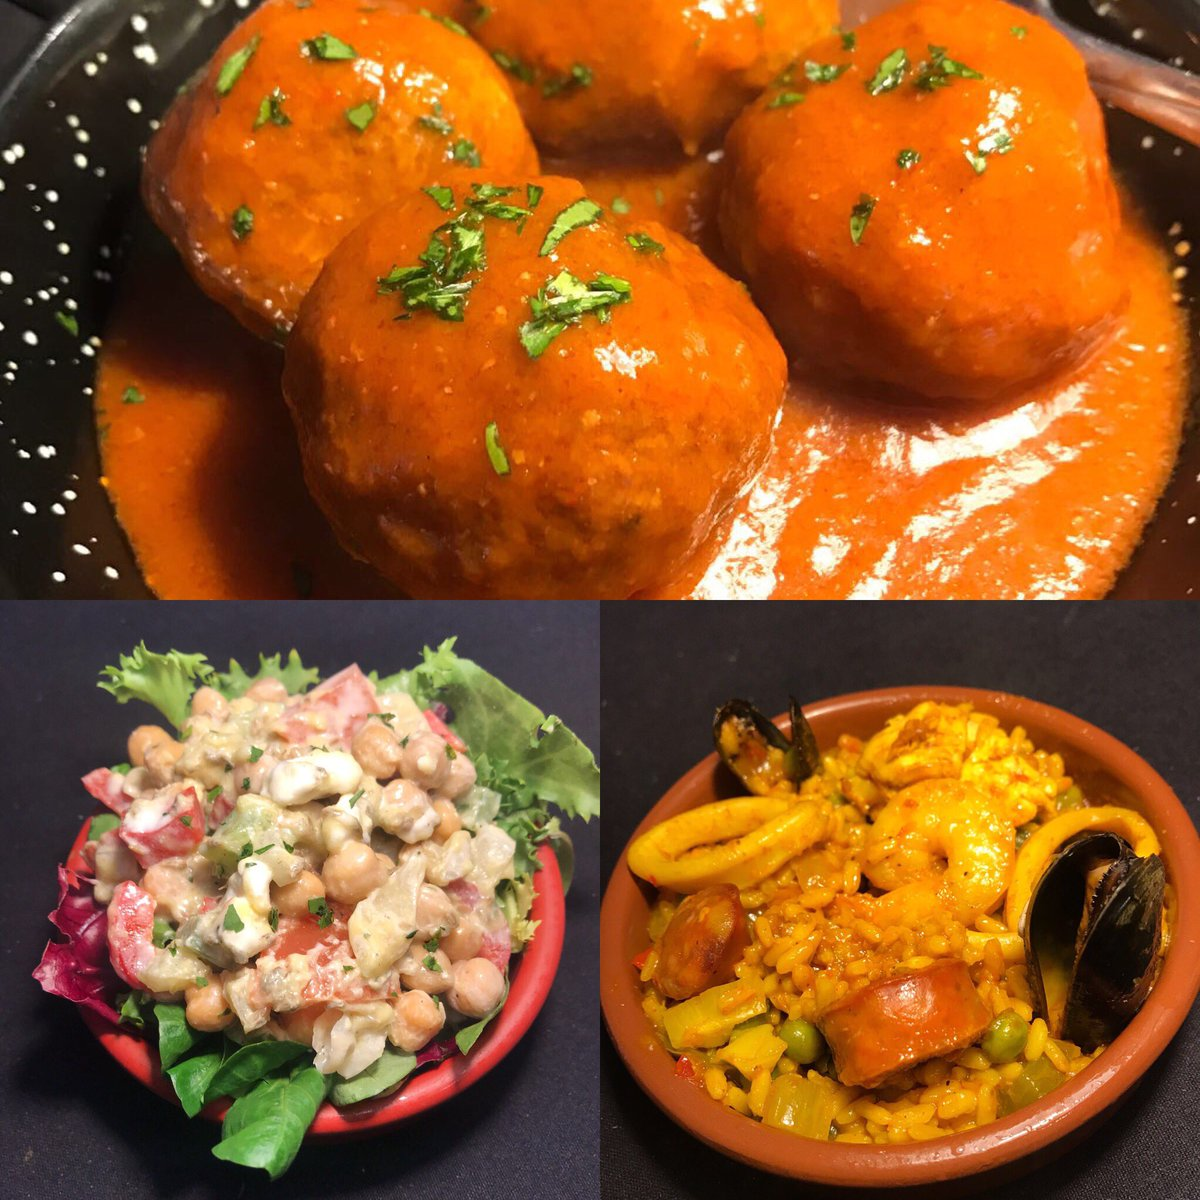 test Twitter Media - Our special lunchtime offer is back! Choose 3 tapas dishes for £12 or 2 for £9 - includes bread & alioli.  Available Tues to Fri 12pm to 3pm. Come & treat the family this half term. (Excludes sharing board).  #halfterm #tapas #folkestone  @CQ_folkestone #hythe @folkestoneOHS https://t.co/QPONm4vcdc